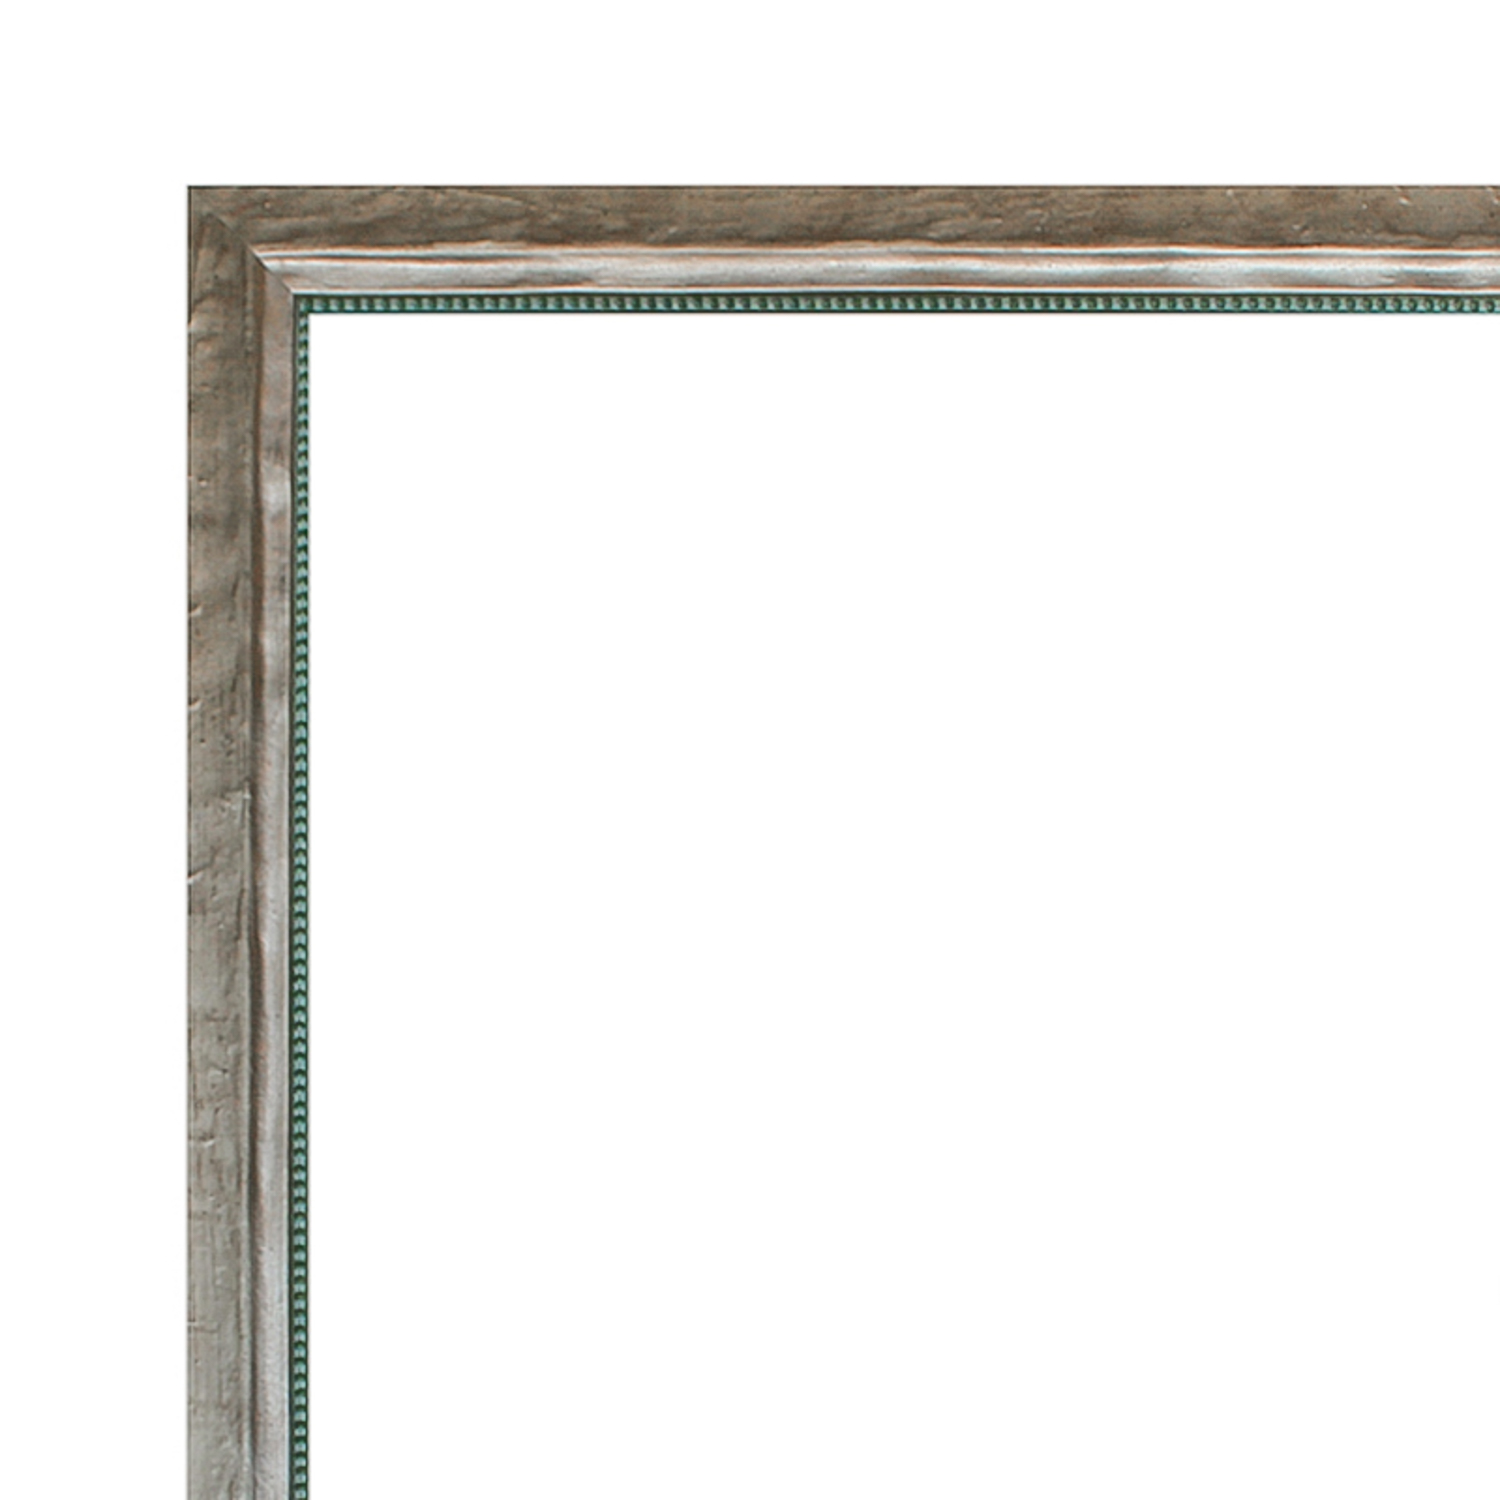 Ready-made wooden frame 151